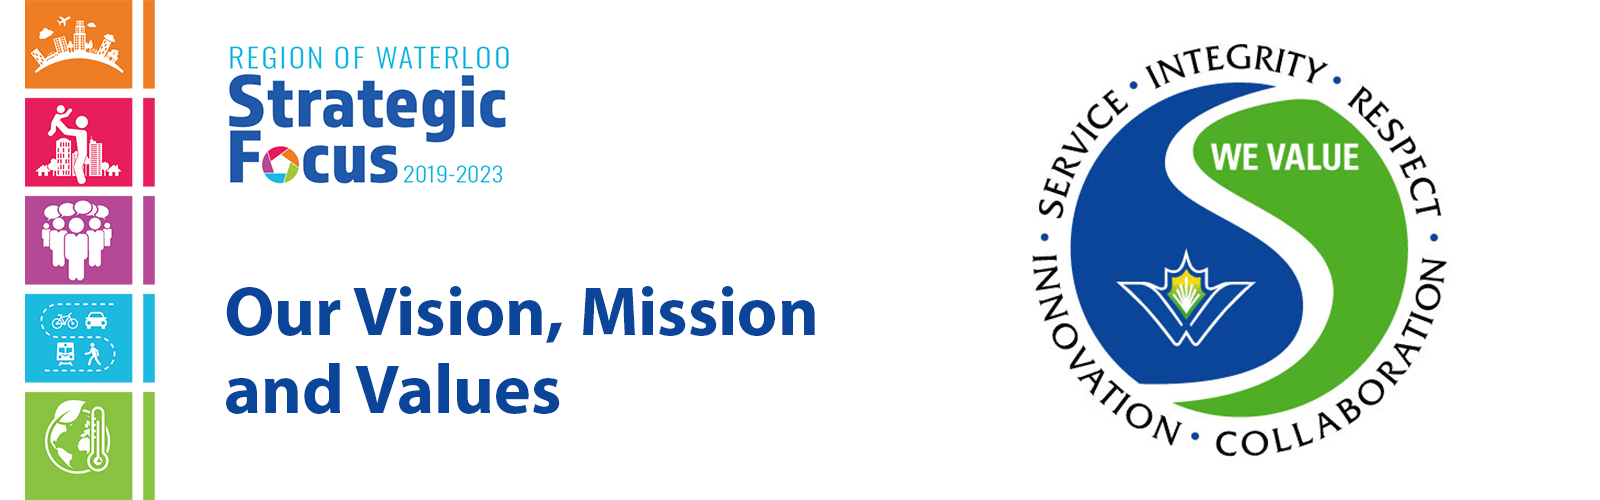 Vision mission and values banner